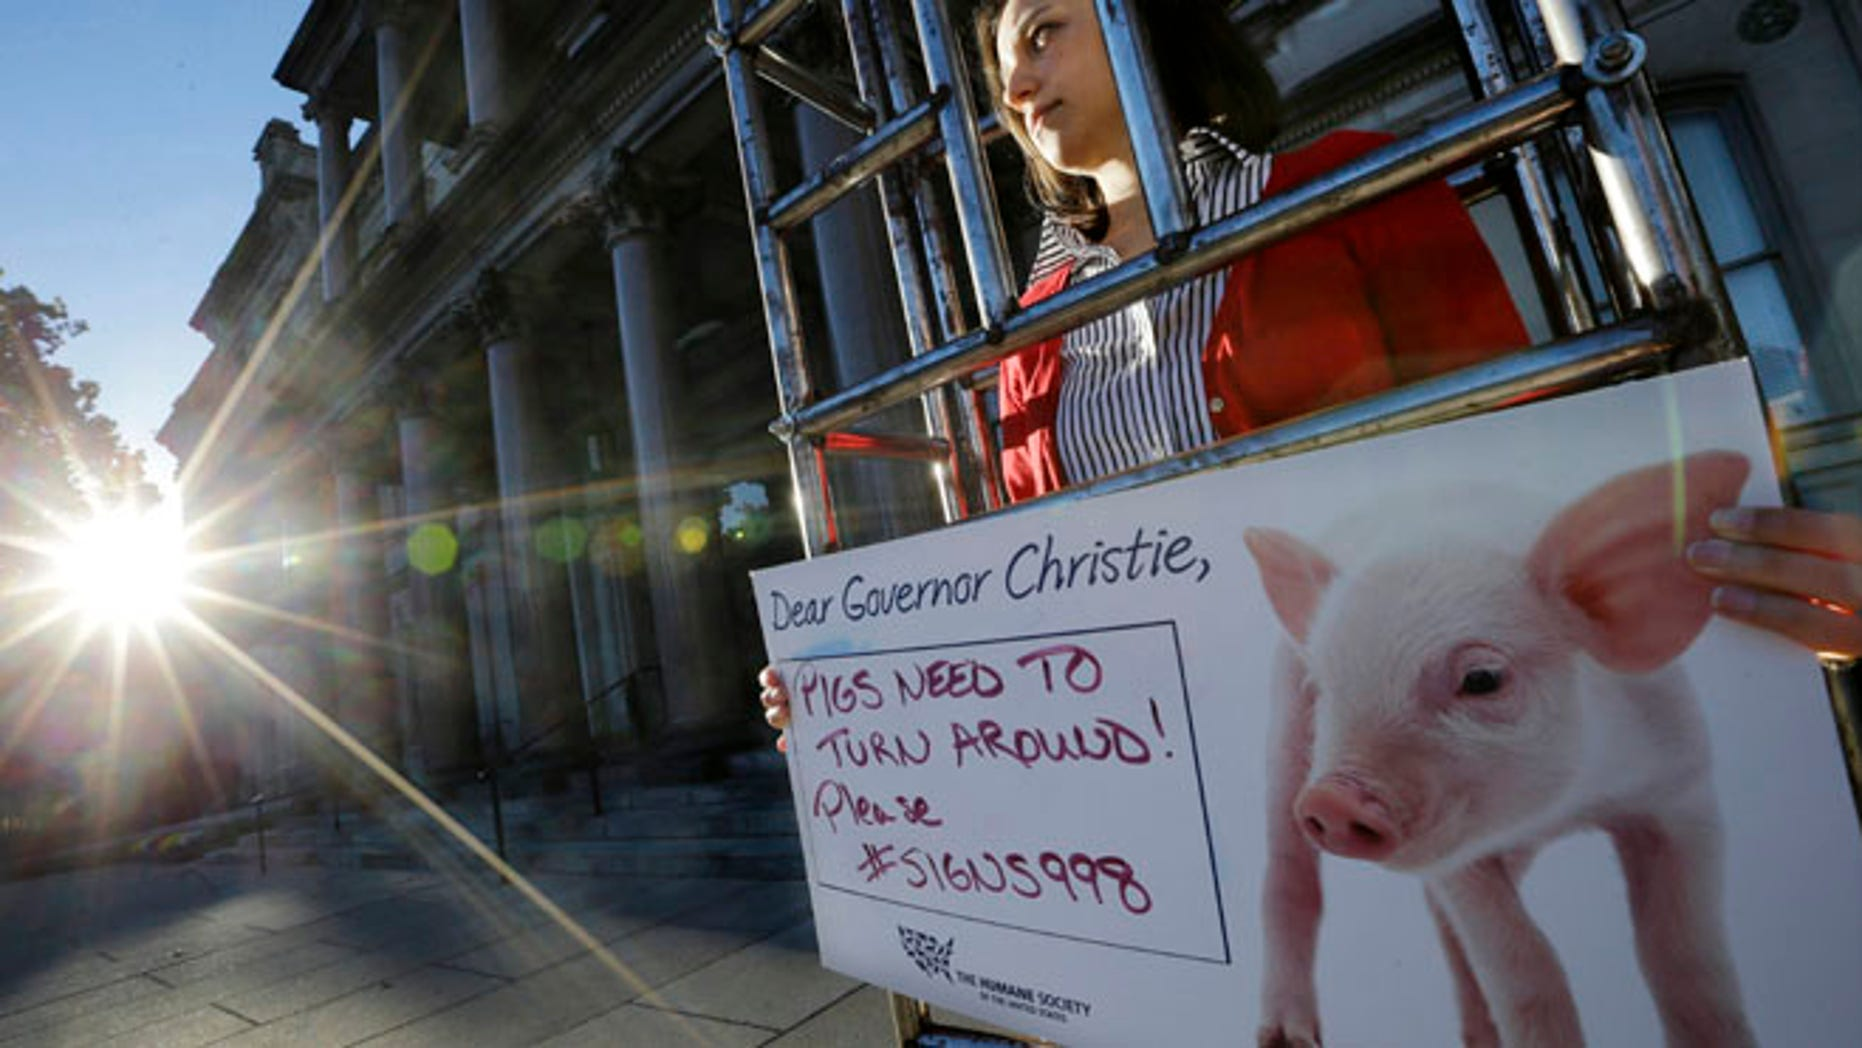 """Oct. 27, 2014: Sarah Swingle, of Charleston, S.C., with the Humane Society of the United States, stands immobilized in a human-sized """"gestation crate,"""" in front of the Statehouse, in Trenton, N.J. (AP)"""